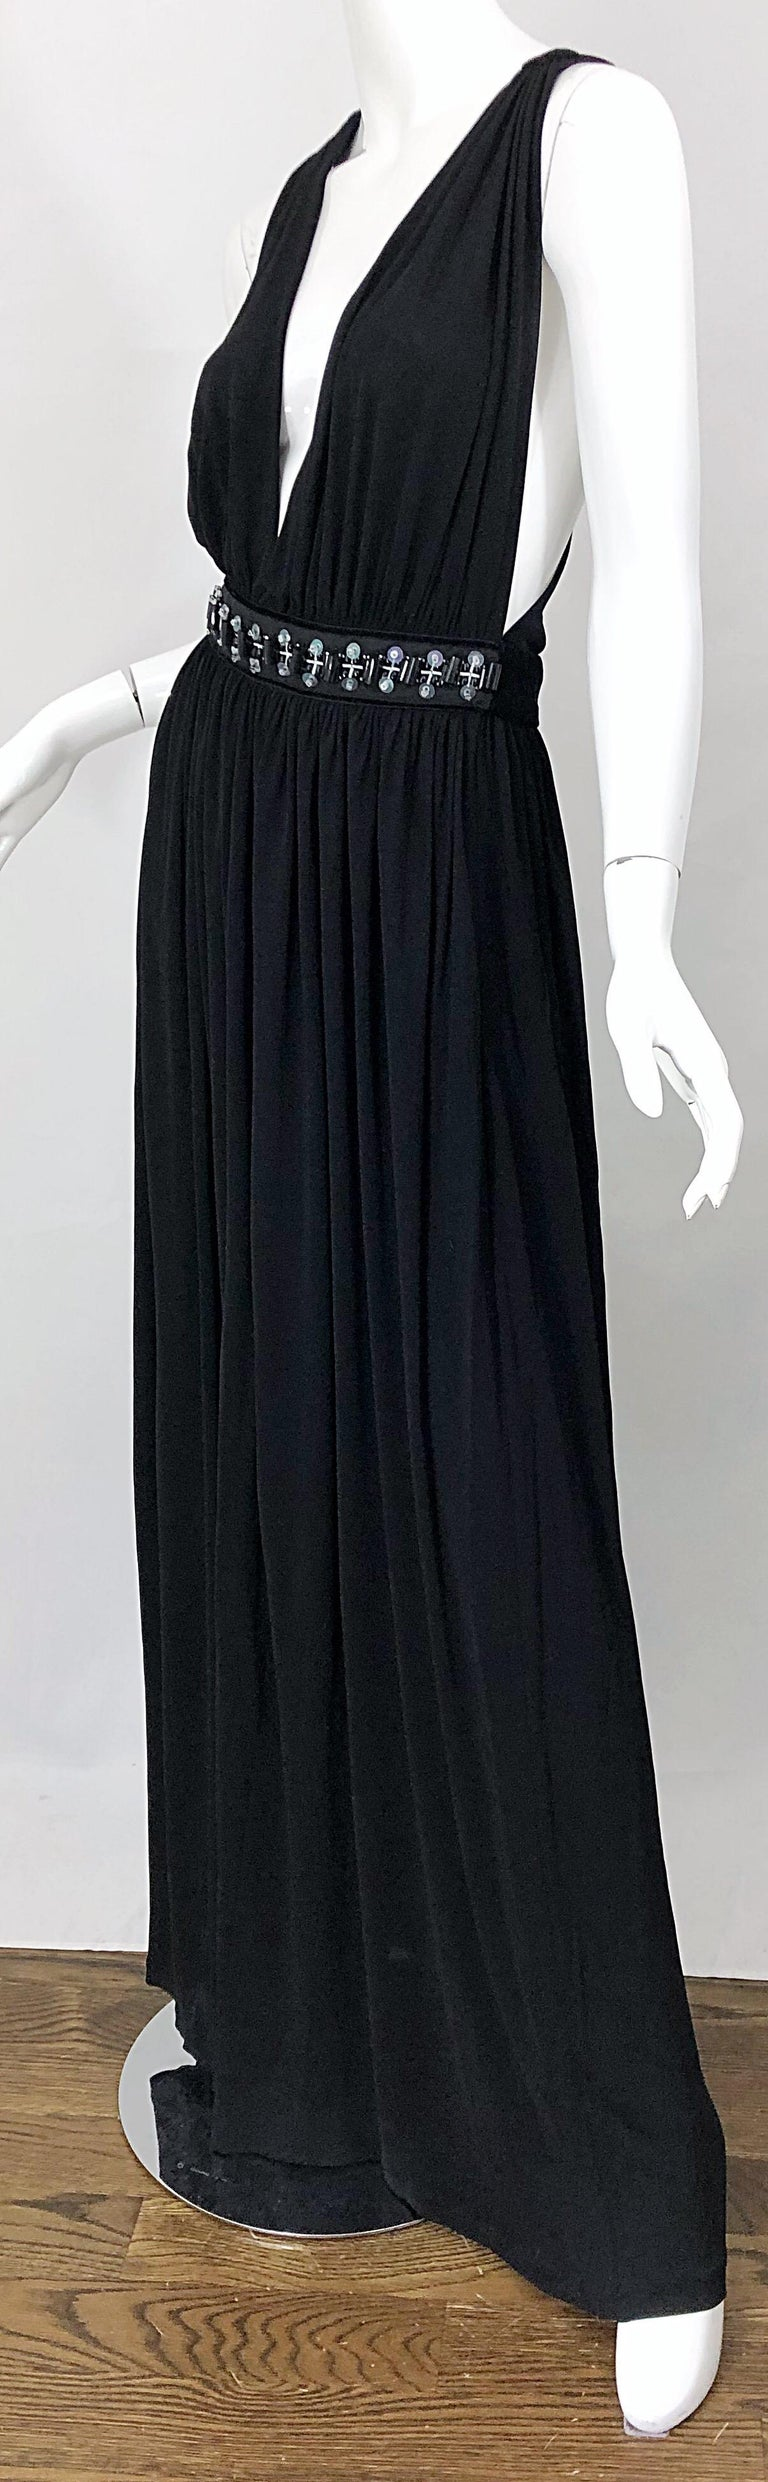 1990s Dolce & Gabbana D&G Black Plunging Sexy Beaded Sleeveless Vintage 90s Gown For Sale 4